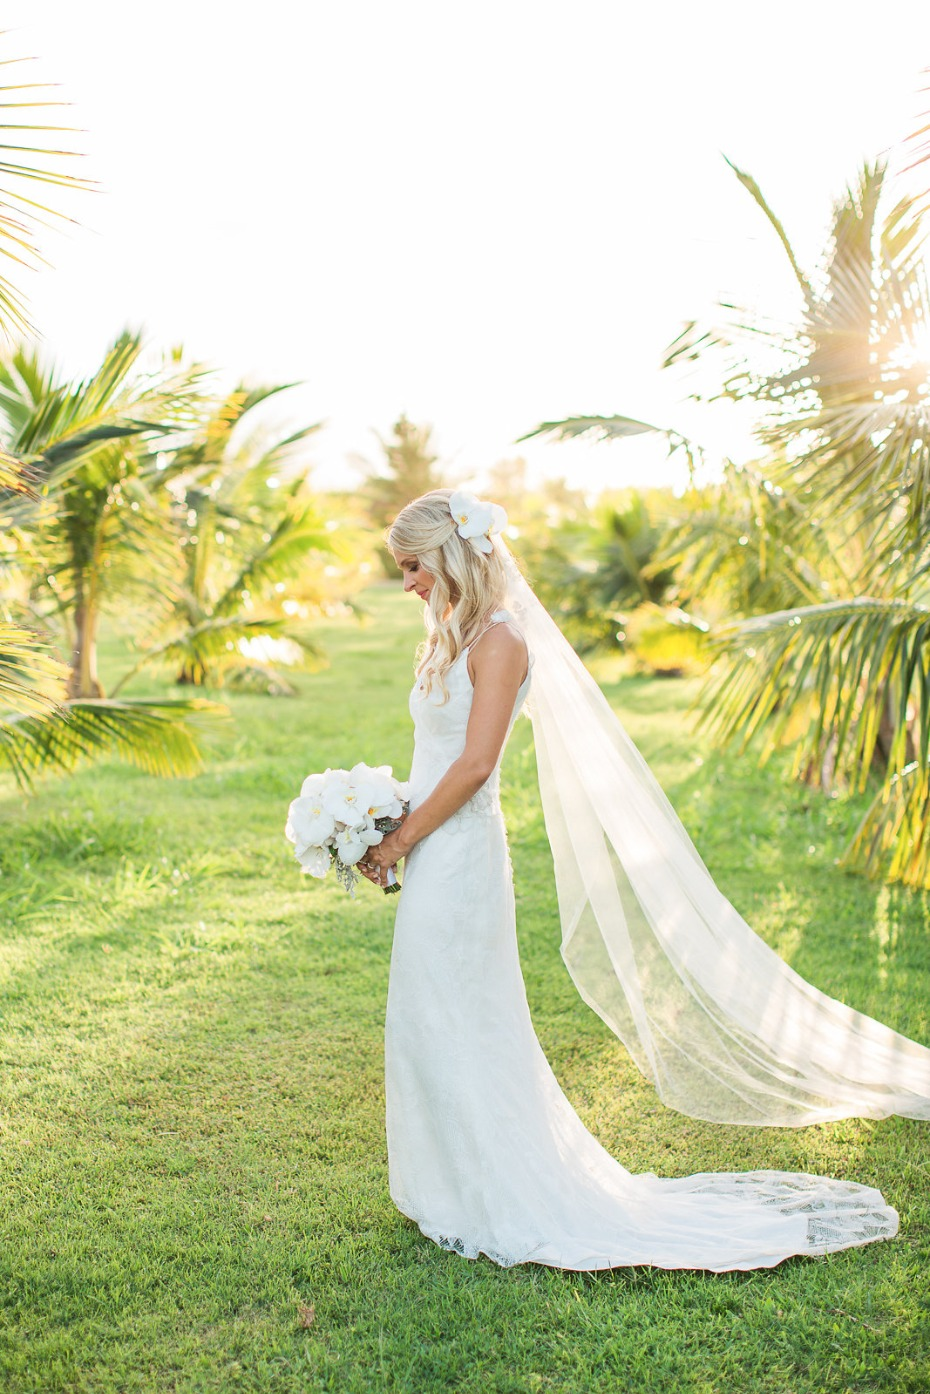 Kauai bride amongst the palm trees